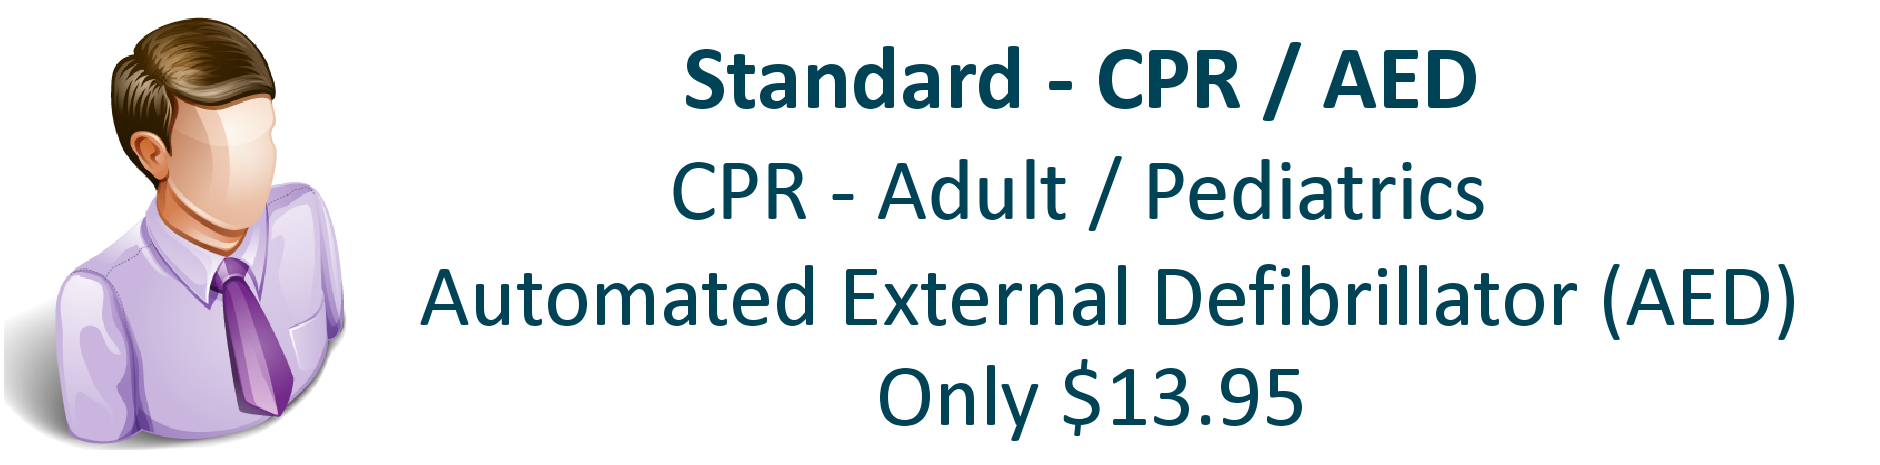 Ca 91301 Agoura Cpr Certification Cpr Certification Online First